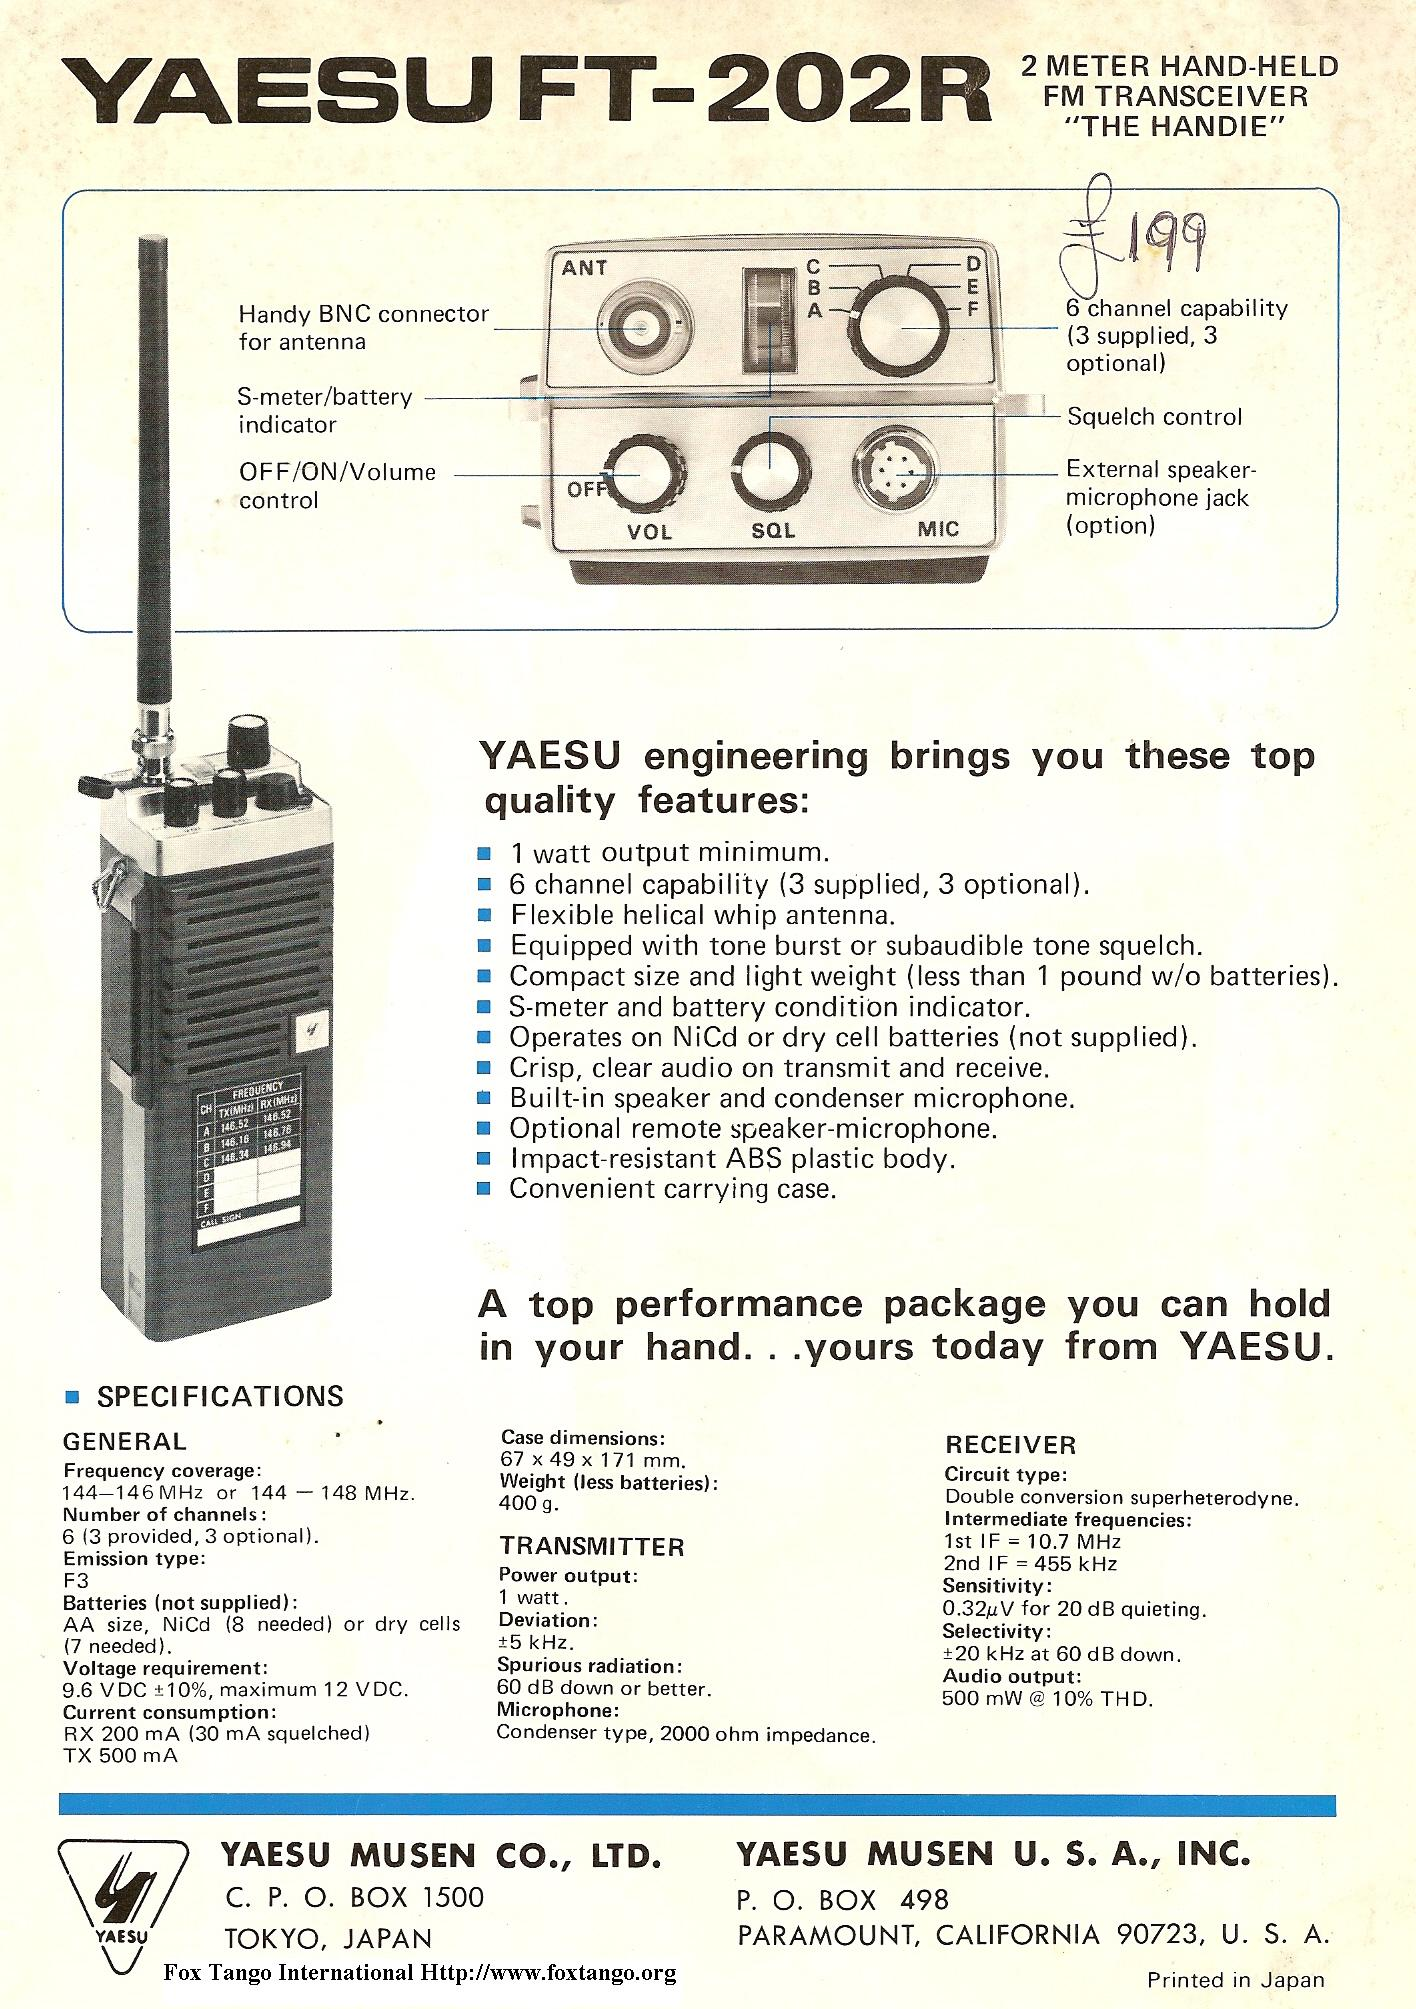 Yaesu Handheld Radios An Early Look 1970s 1980 Speaker Microphone Circuit In 1956 Was A Fledgling Company That Started By Its Founder Sako Hasegawa San From Modest Beginnings Small Home The Tokyo Suburbs